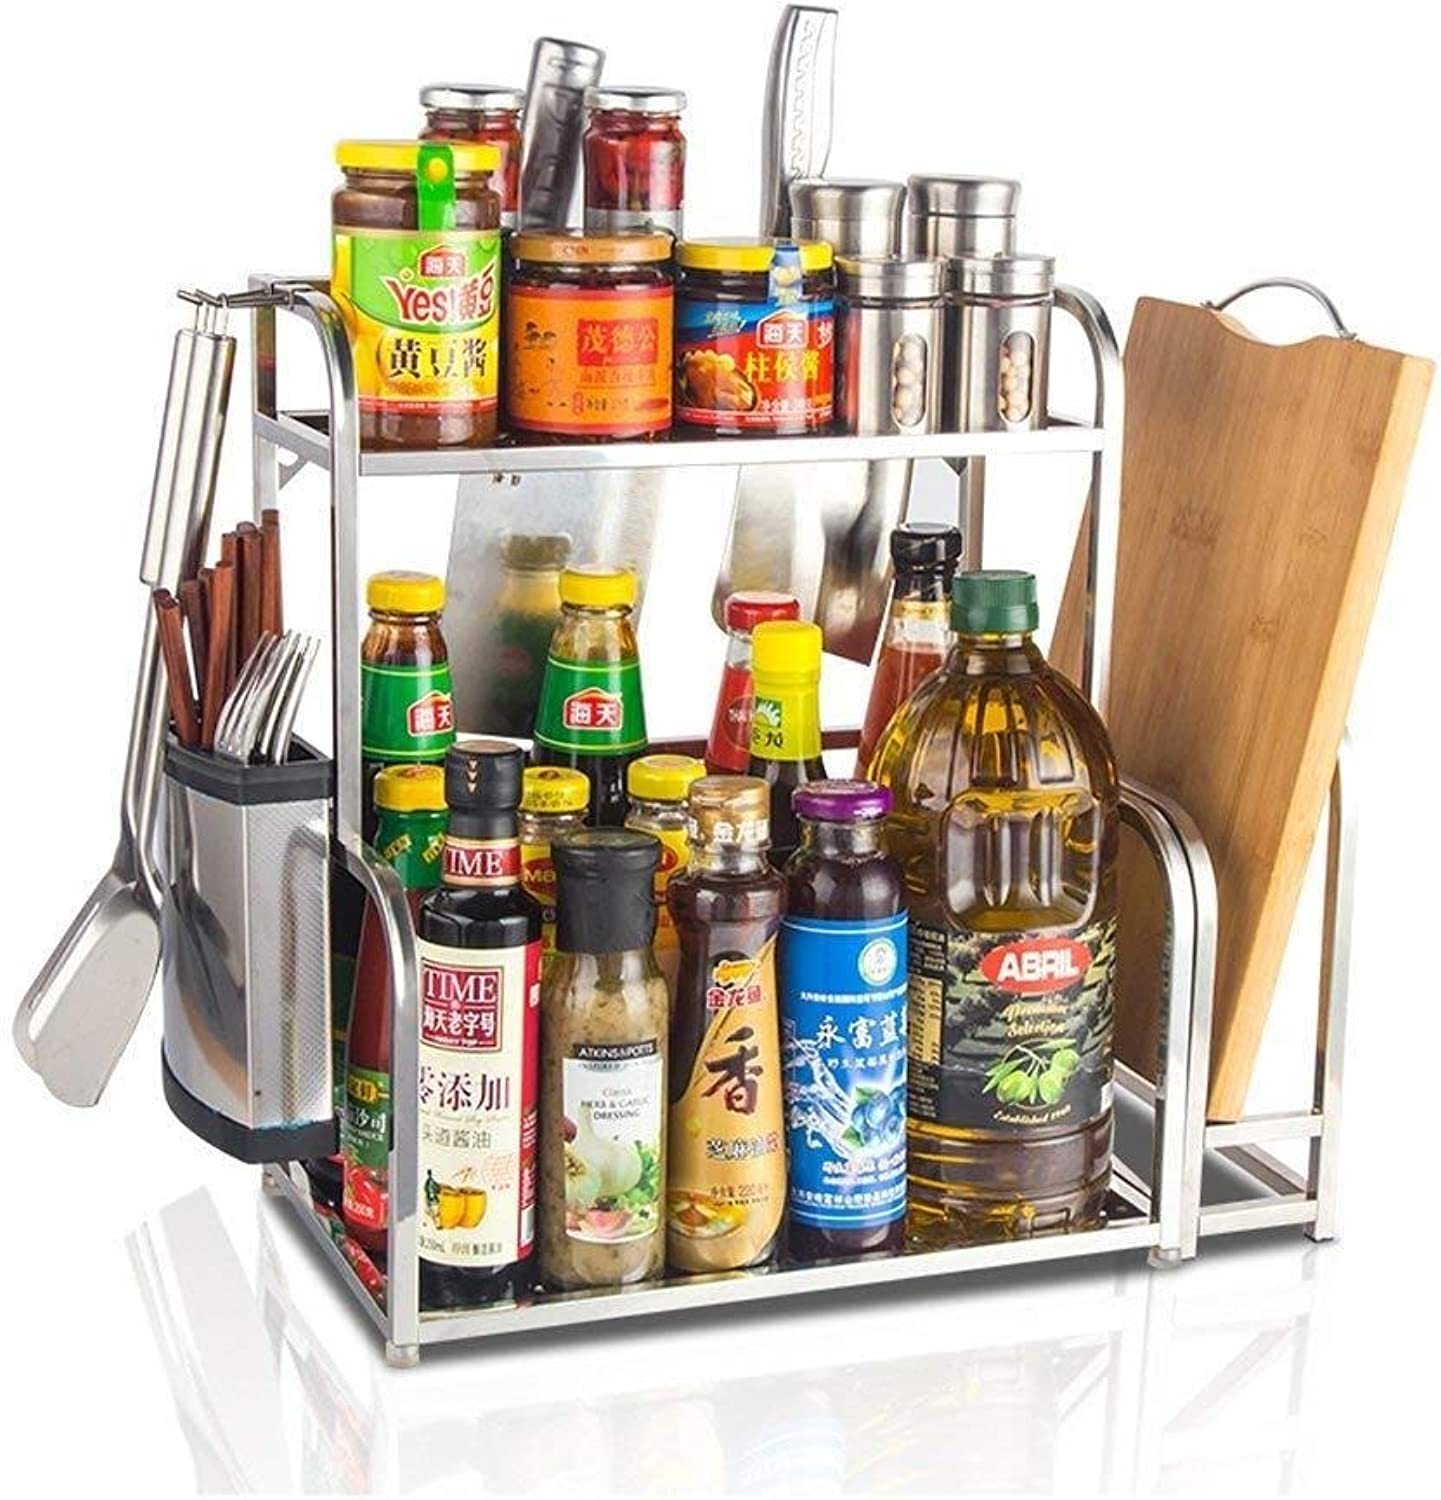 Storage Rack- 304 Stainless Steel Kitchen Rack Storage Rack Knife Cutting Board Frame Seasoning Rack Spice Rack 2 Layers ZXMDMZ (Size   Small)